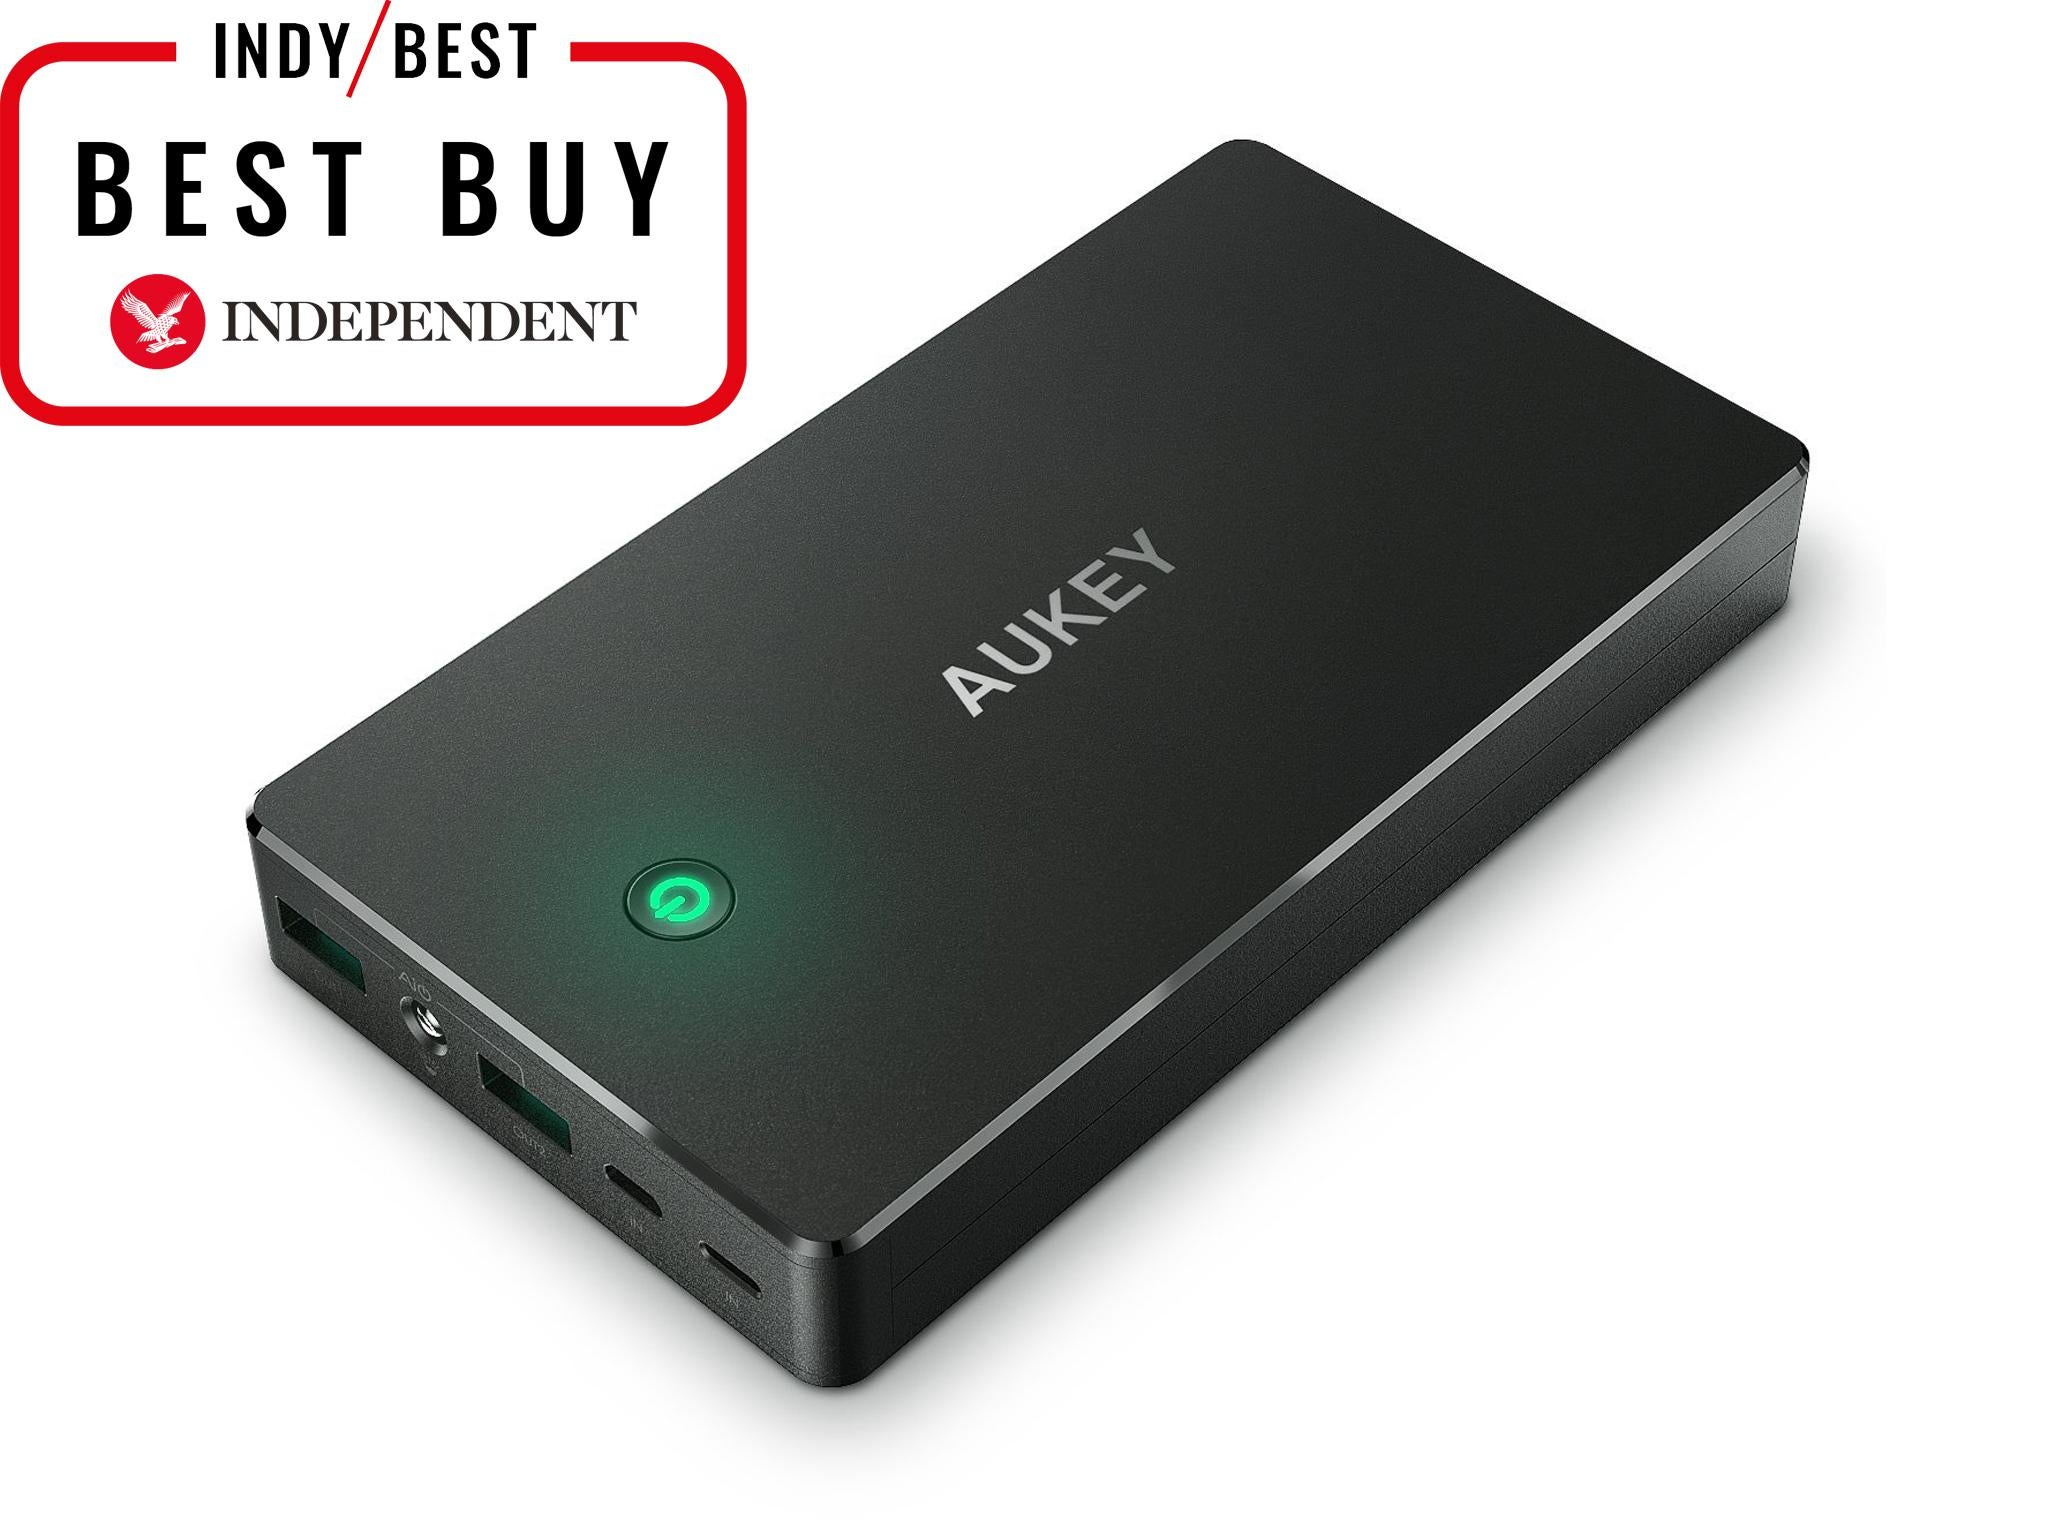 10 Best Portable Chargers The Independent Powerbank Fan 2 In 1 Aukey Power Bank 20000mah Charger With Lightning 1999 Amazon